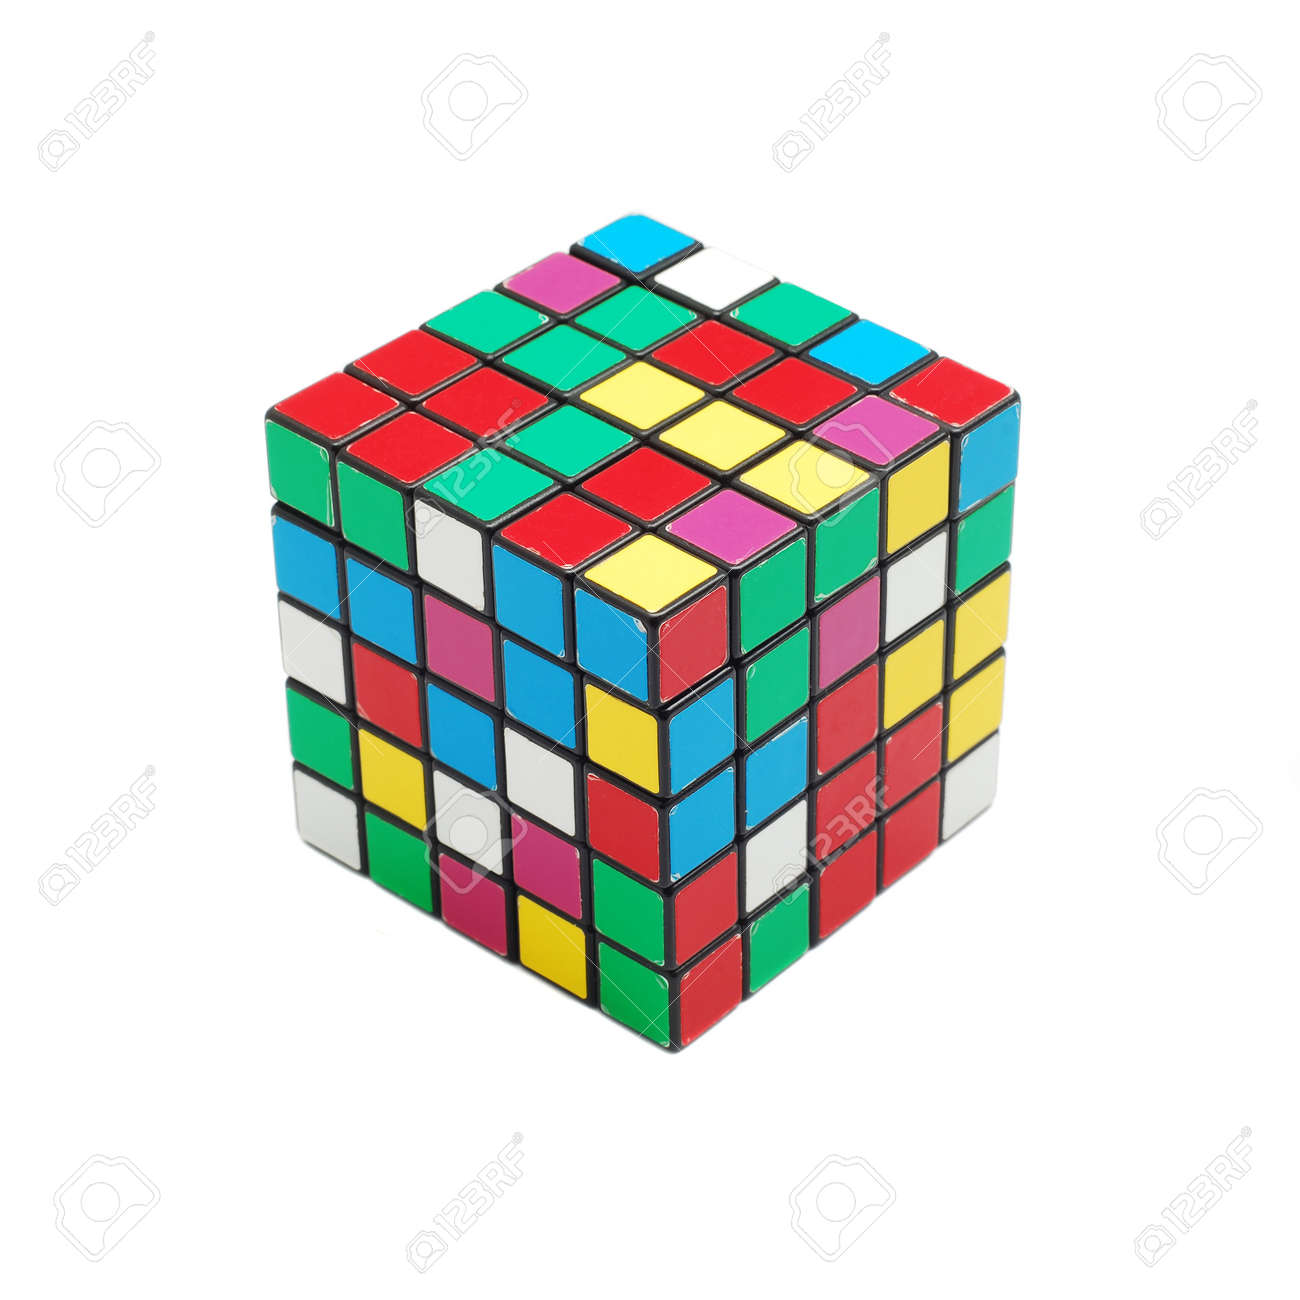 Caransebes, Romania, December, 22nd, 2011 - Rubik cube (scrambled) isolated on white background Stock Photo - 11728492